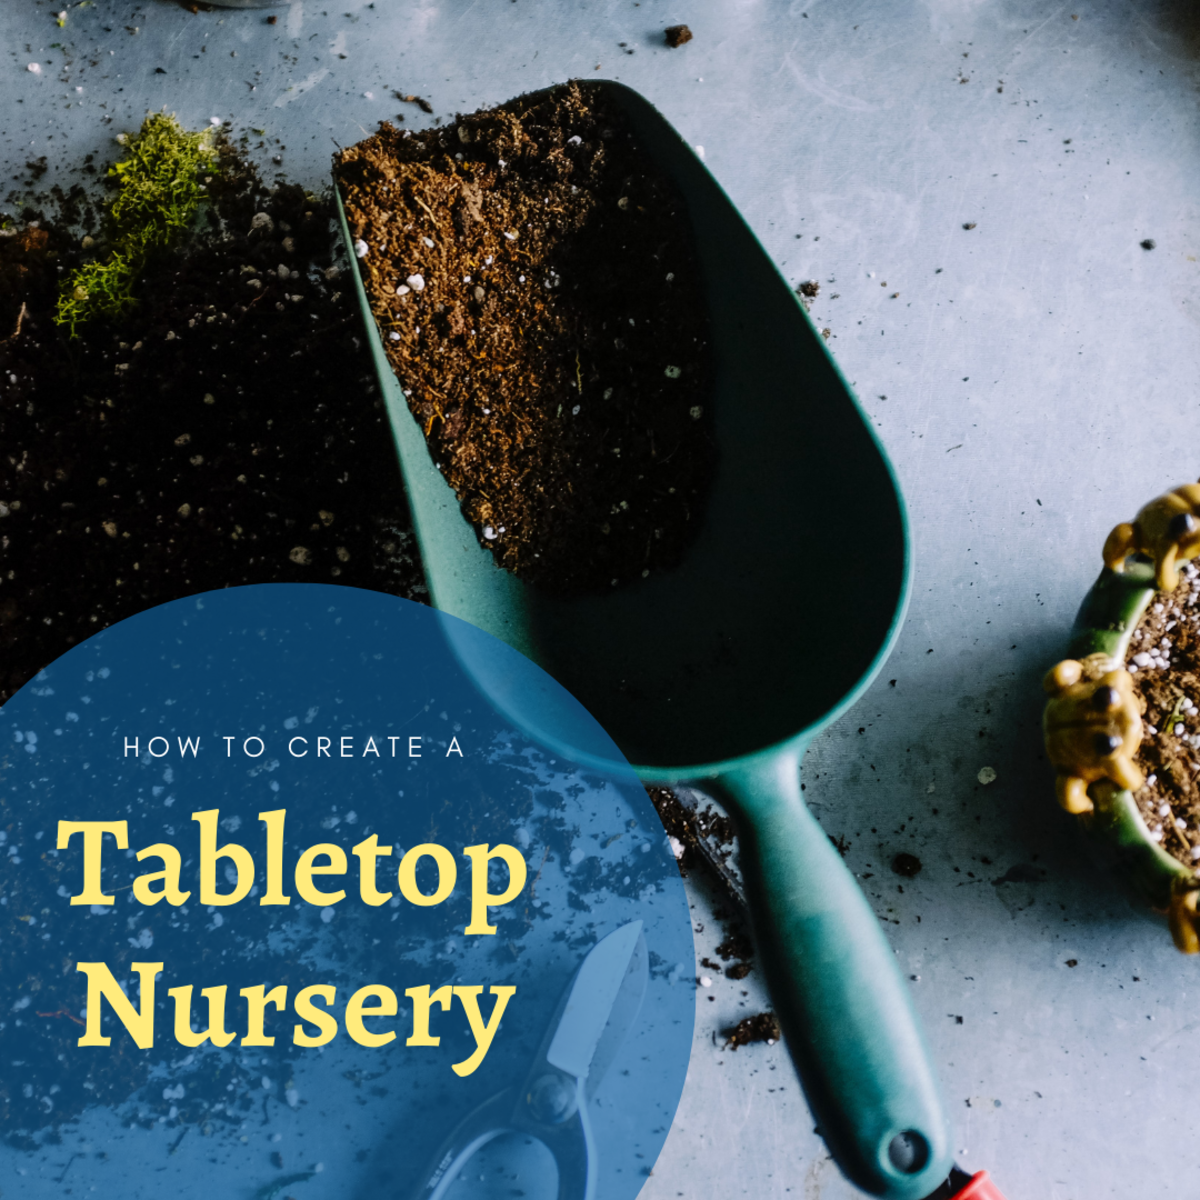 How to Make Money With a Tabletop Nursery